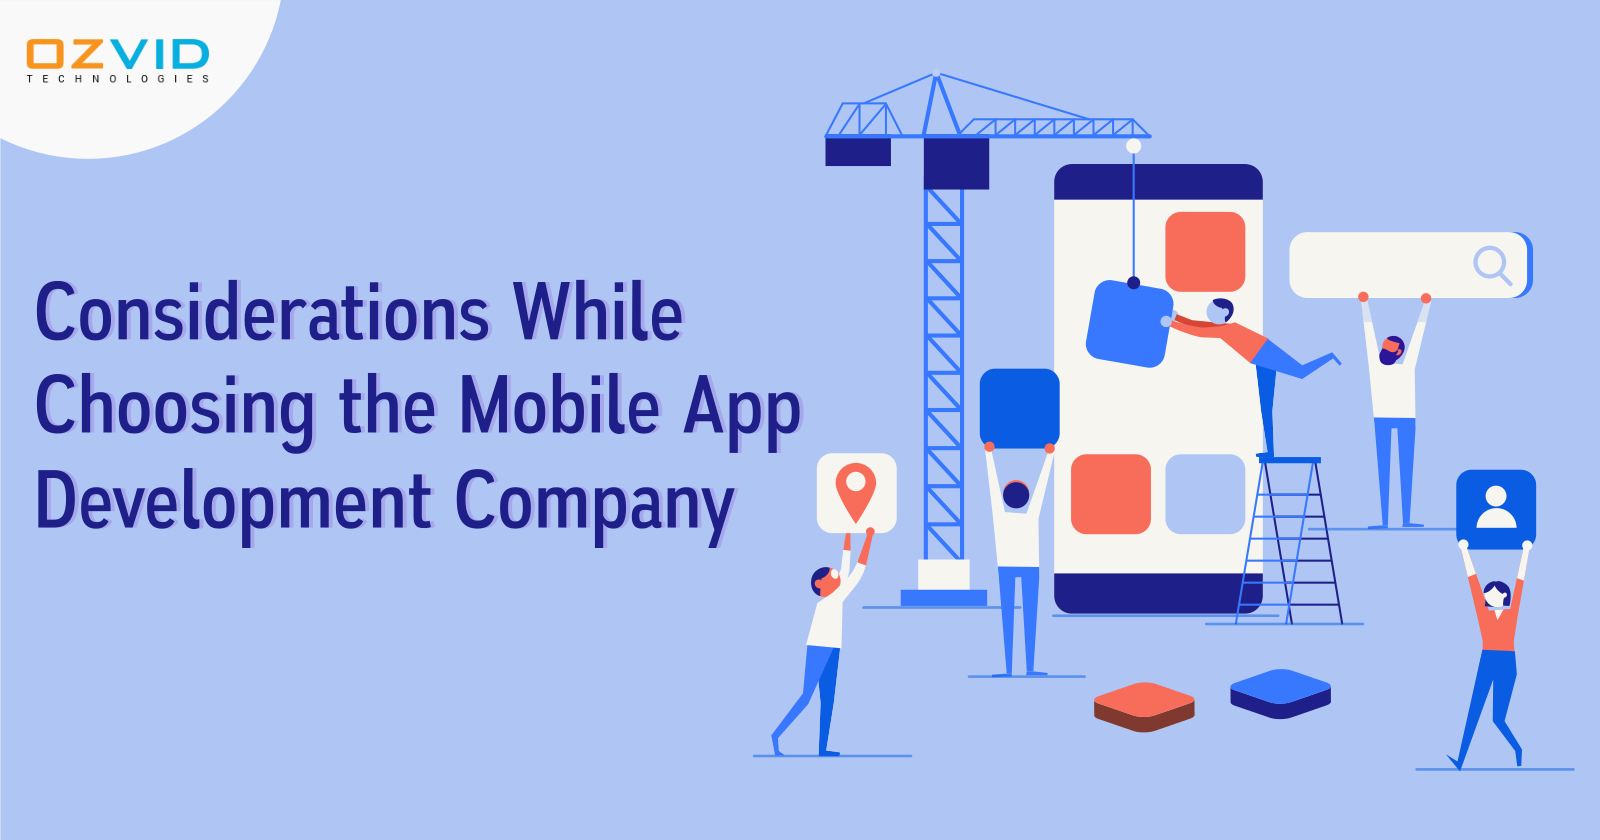 Things to Consider When Choosing the Mobile App Development Company